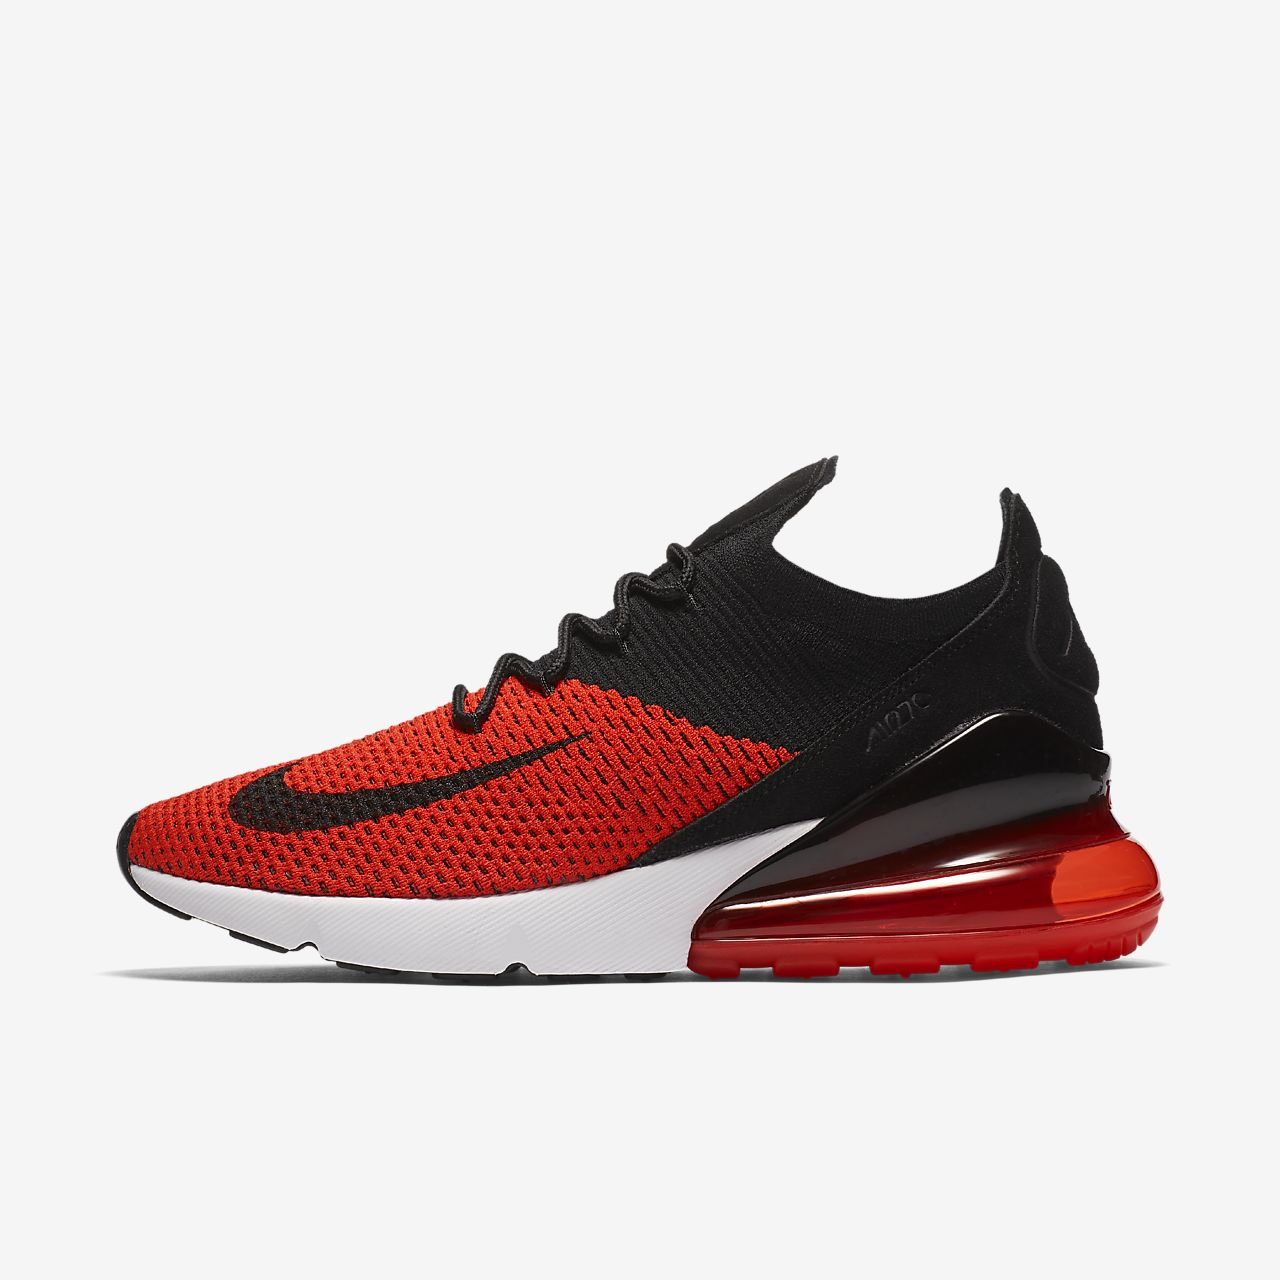 308e3f5380a5d Nike Air Max 270 Flyknit Men s Shoe. Nike.com